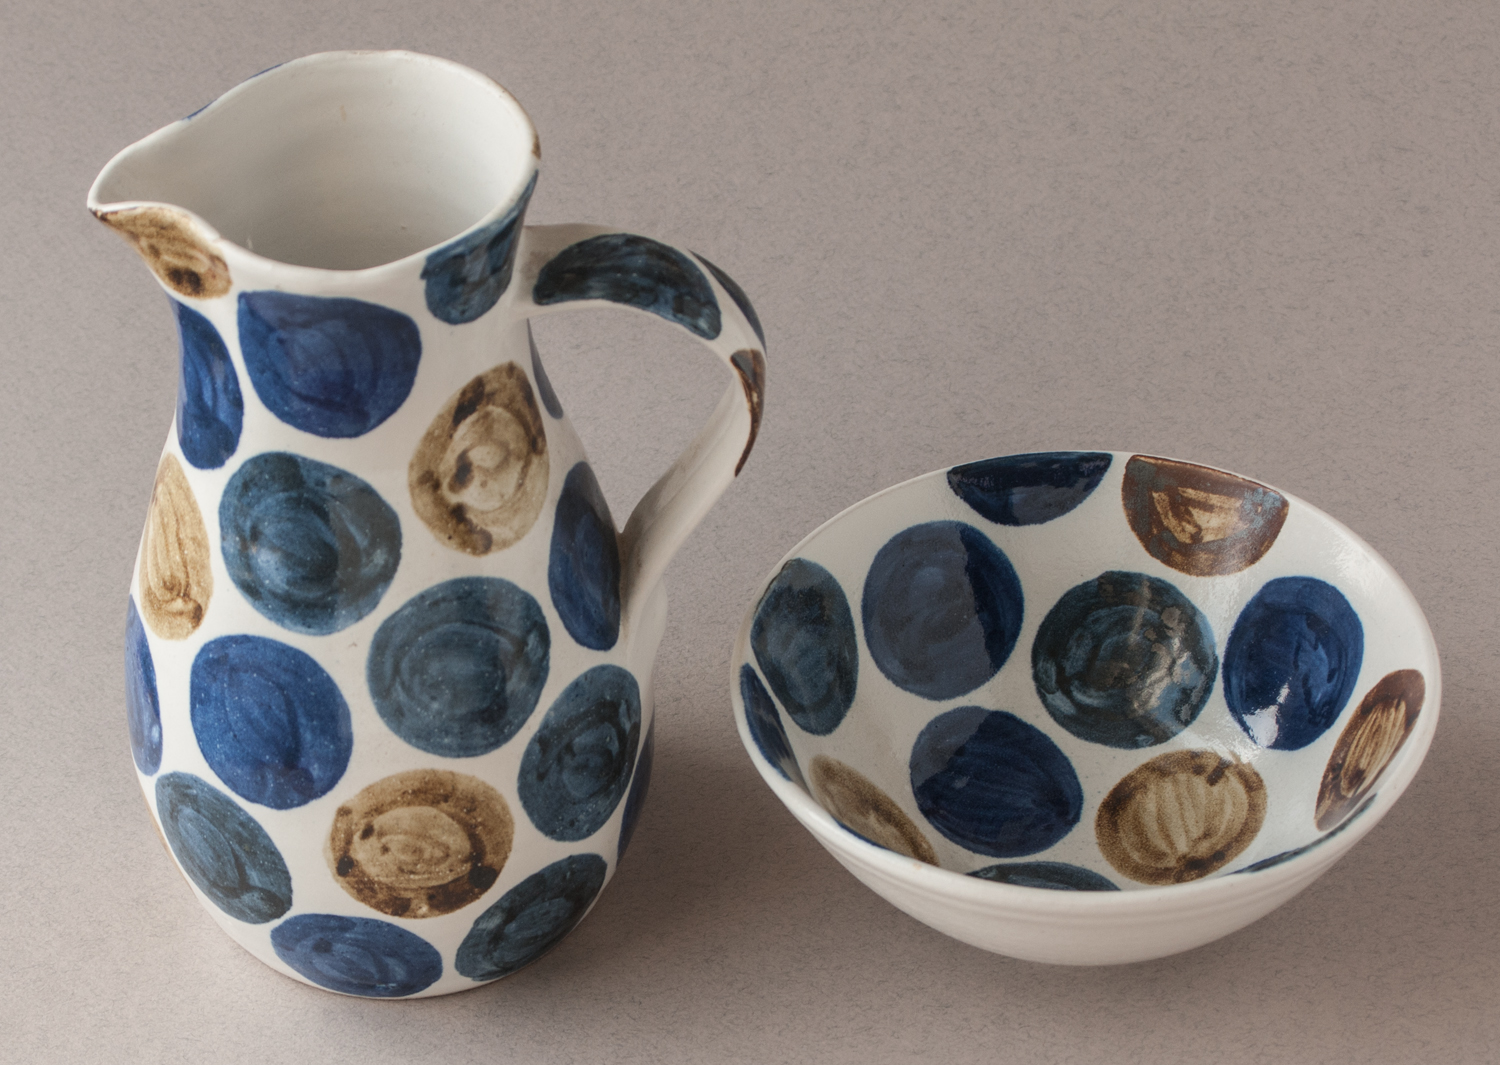 Topsy jewell beautiful bowl and jug with blue circles on